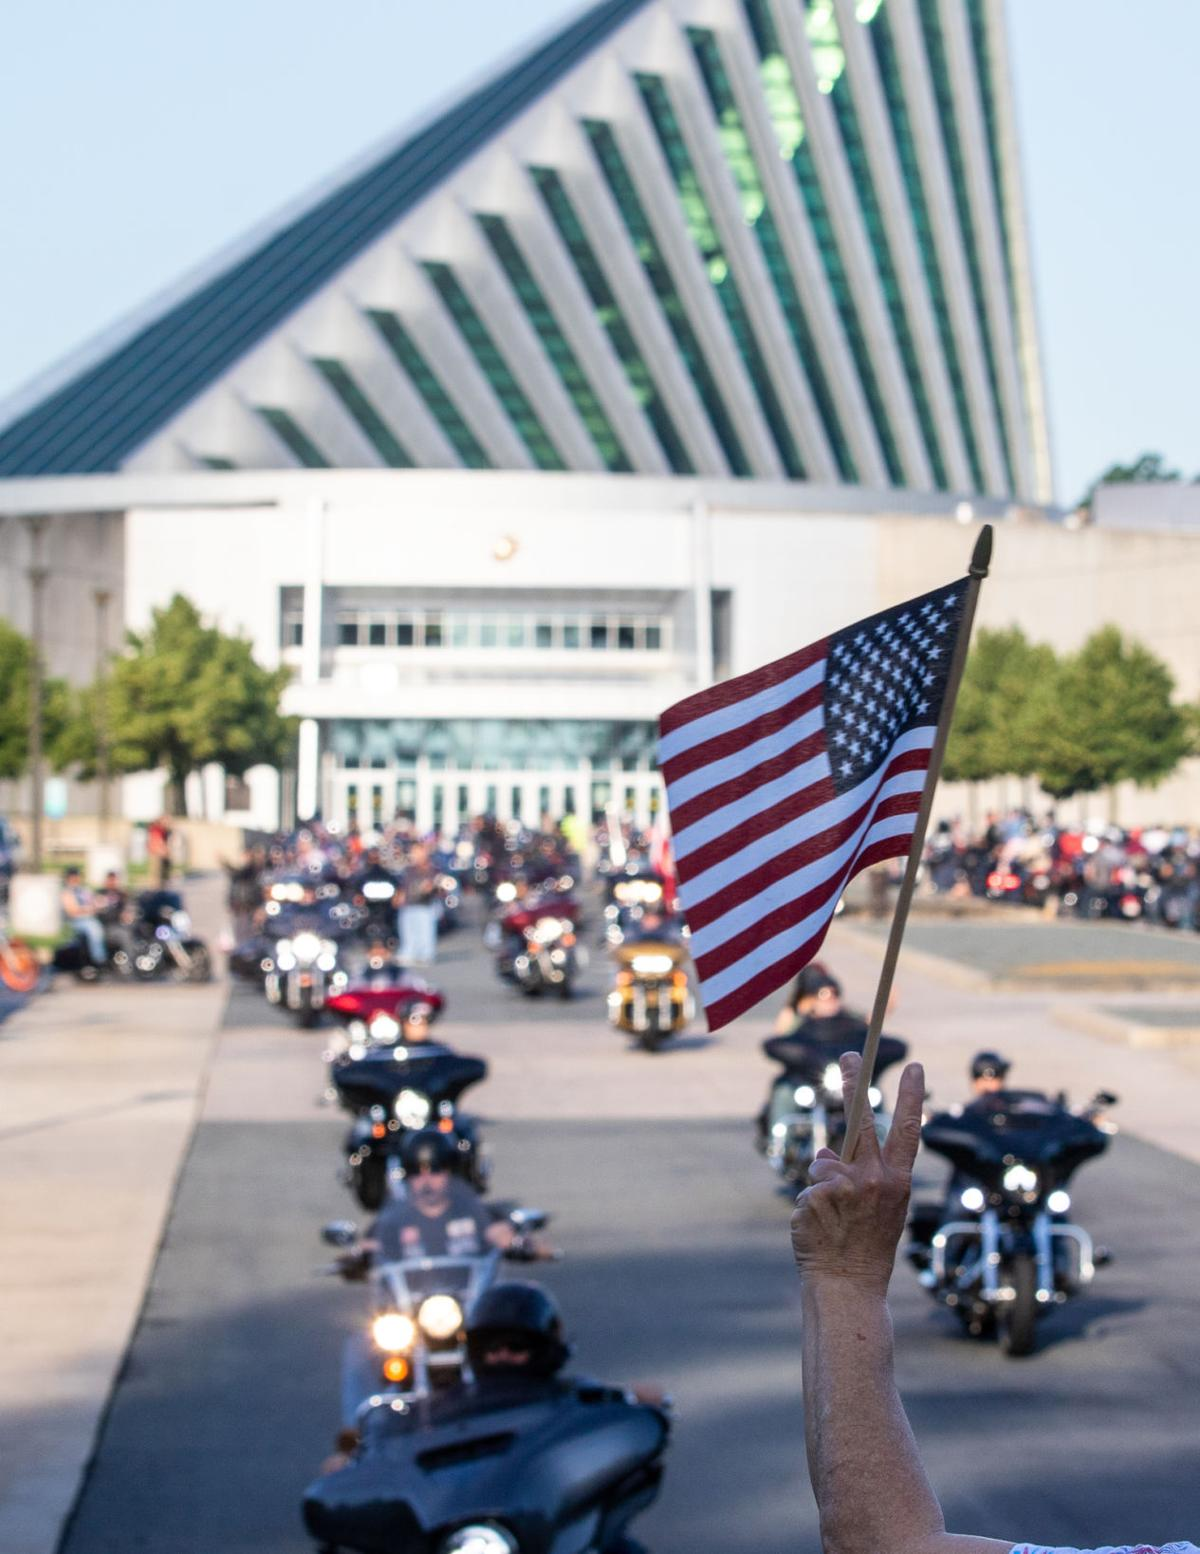 Rolling Thunder 2019 peace sign and flag